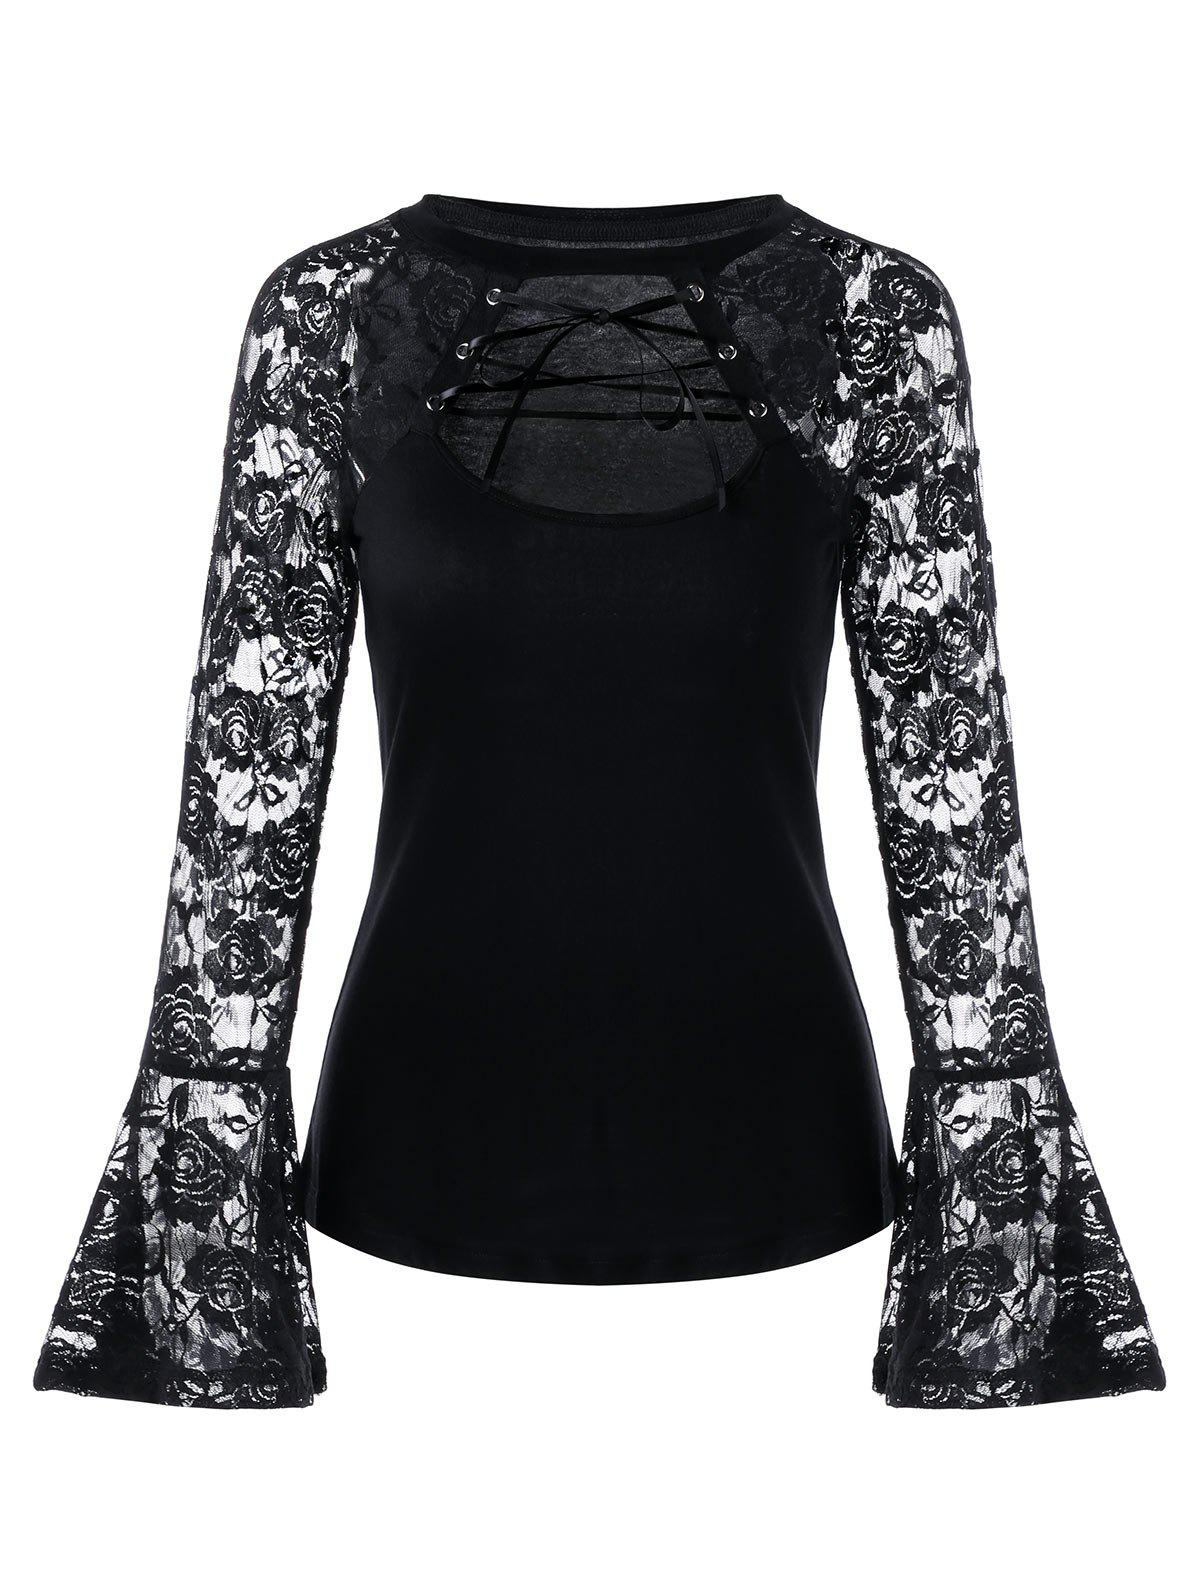 Affordable Cut Out Lace-up Flare Sleeve Lace Top